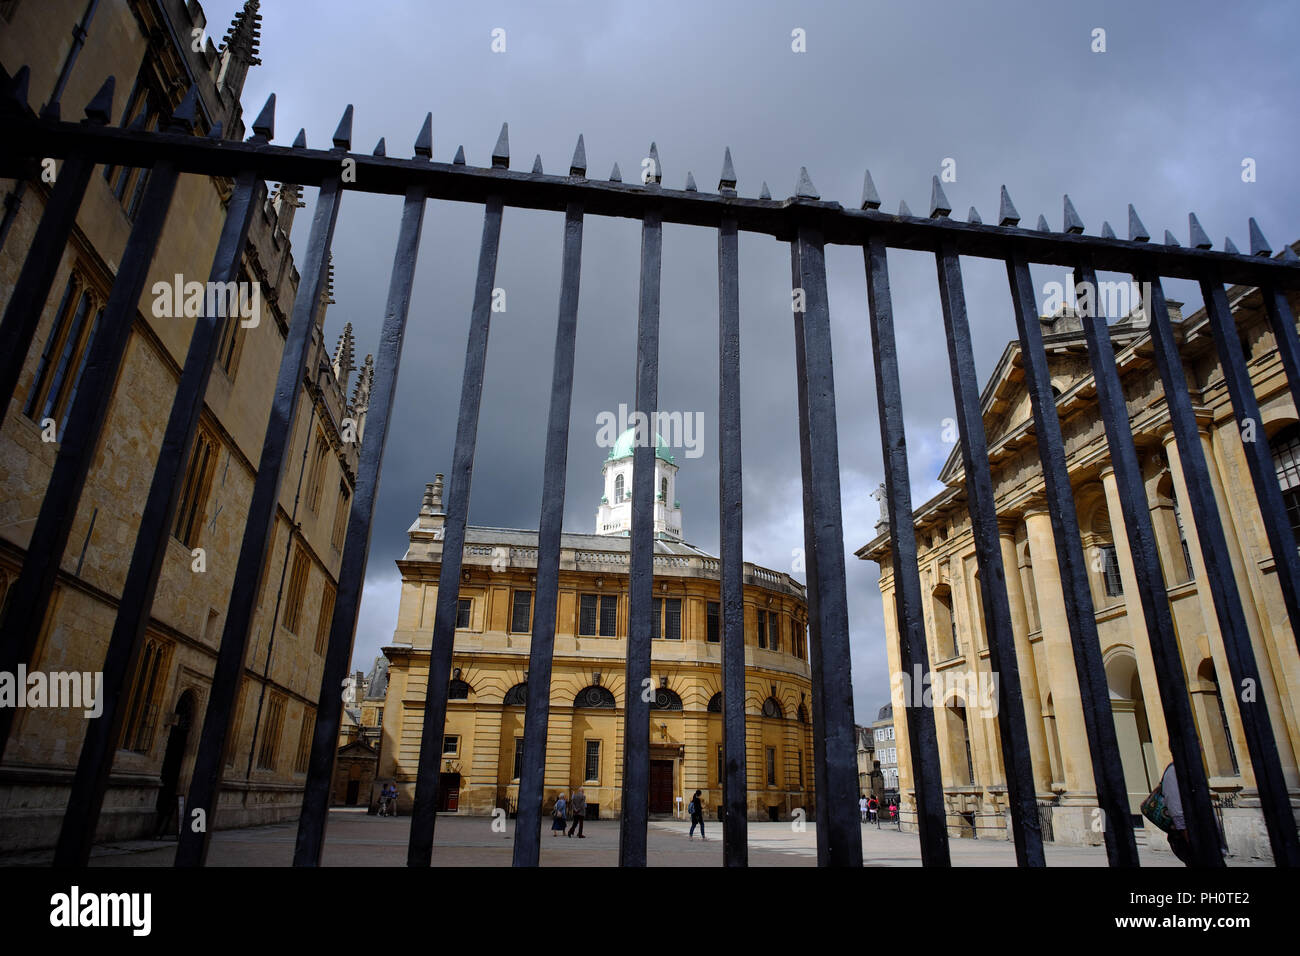 Sheldonian Theatre, Oxford, Oxfordshire, England, UK Stock Photo